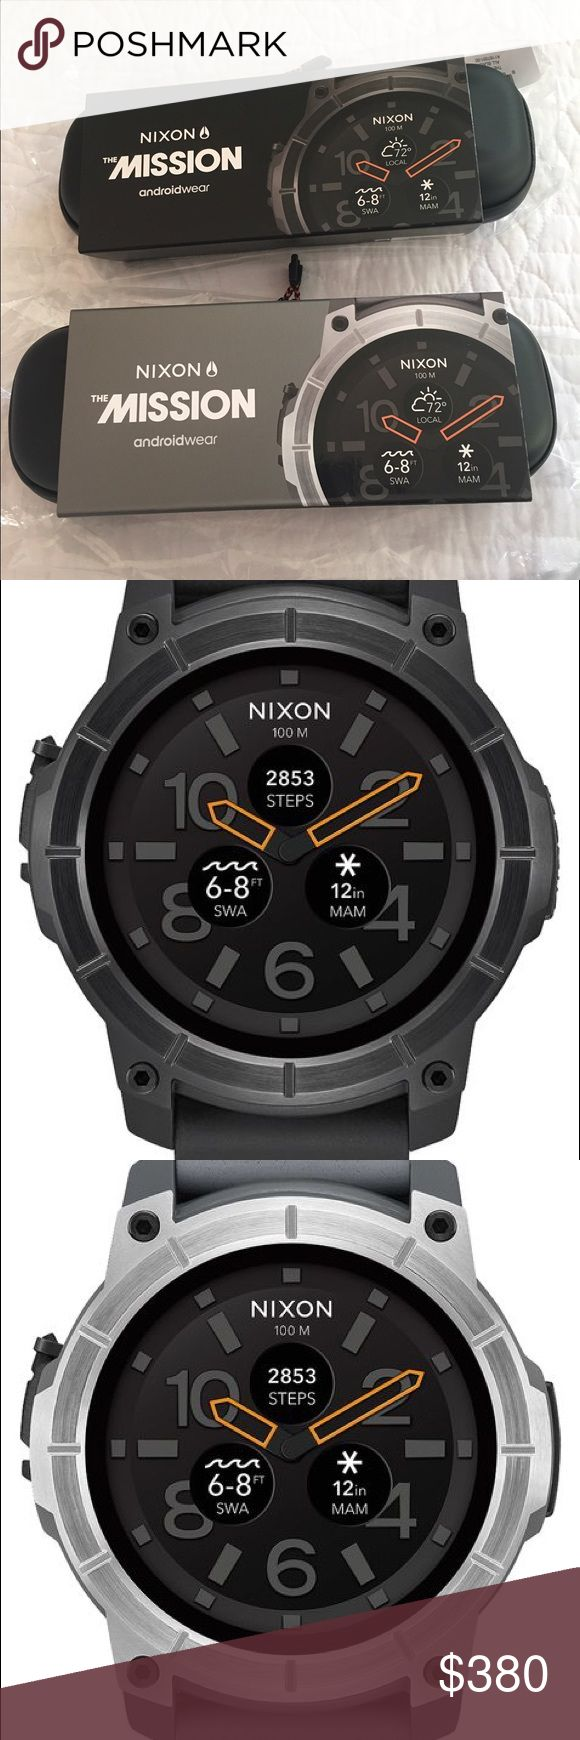 Nixon The Mission Smartwatch Black and Gray Nixon smartwatch, compatible with iPhone and android. Waterproof. New in box with tags Nixon Accessories Watches